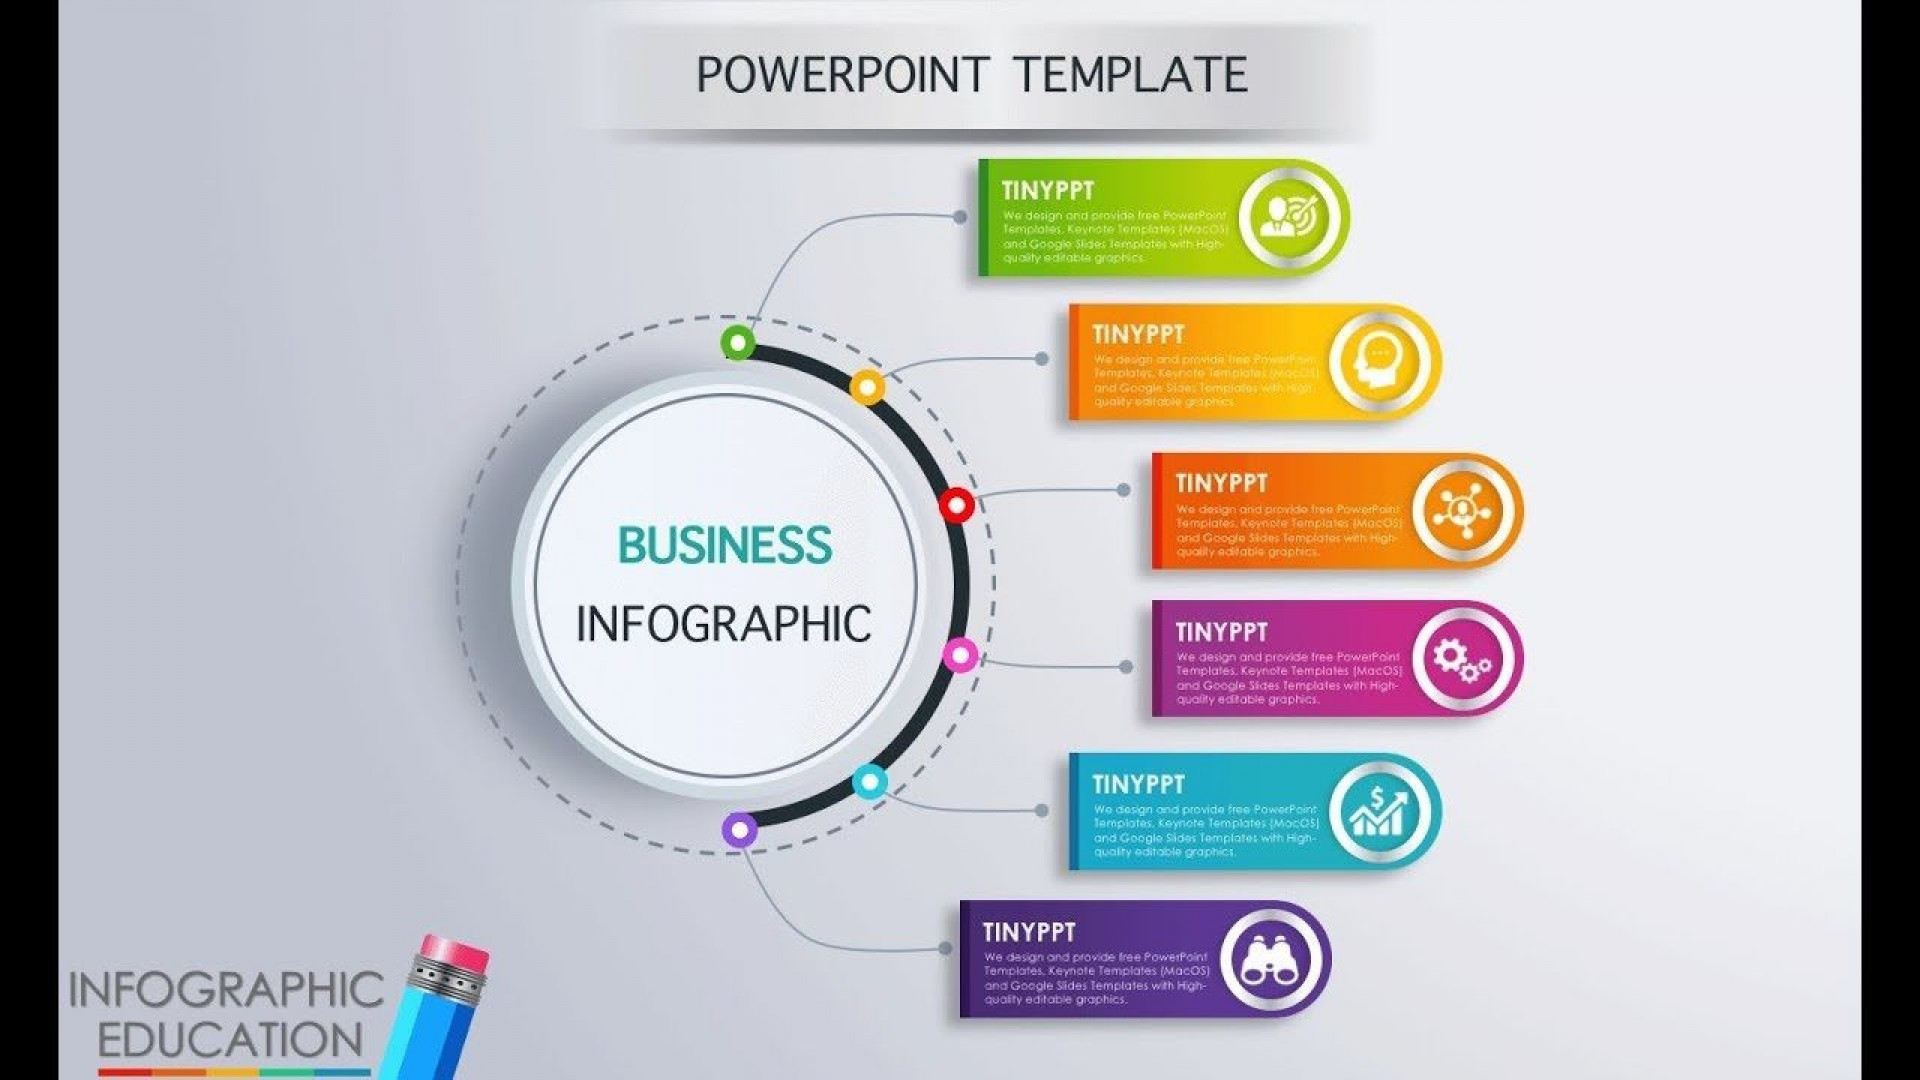 007 Magnificent Ppt Template Free Download Design  Powerpoint 2020 Microsoft History 20181920